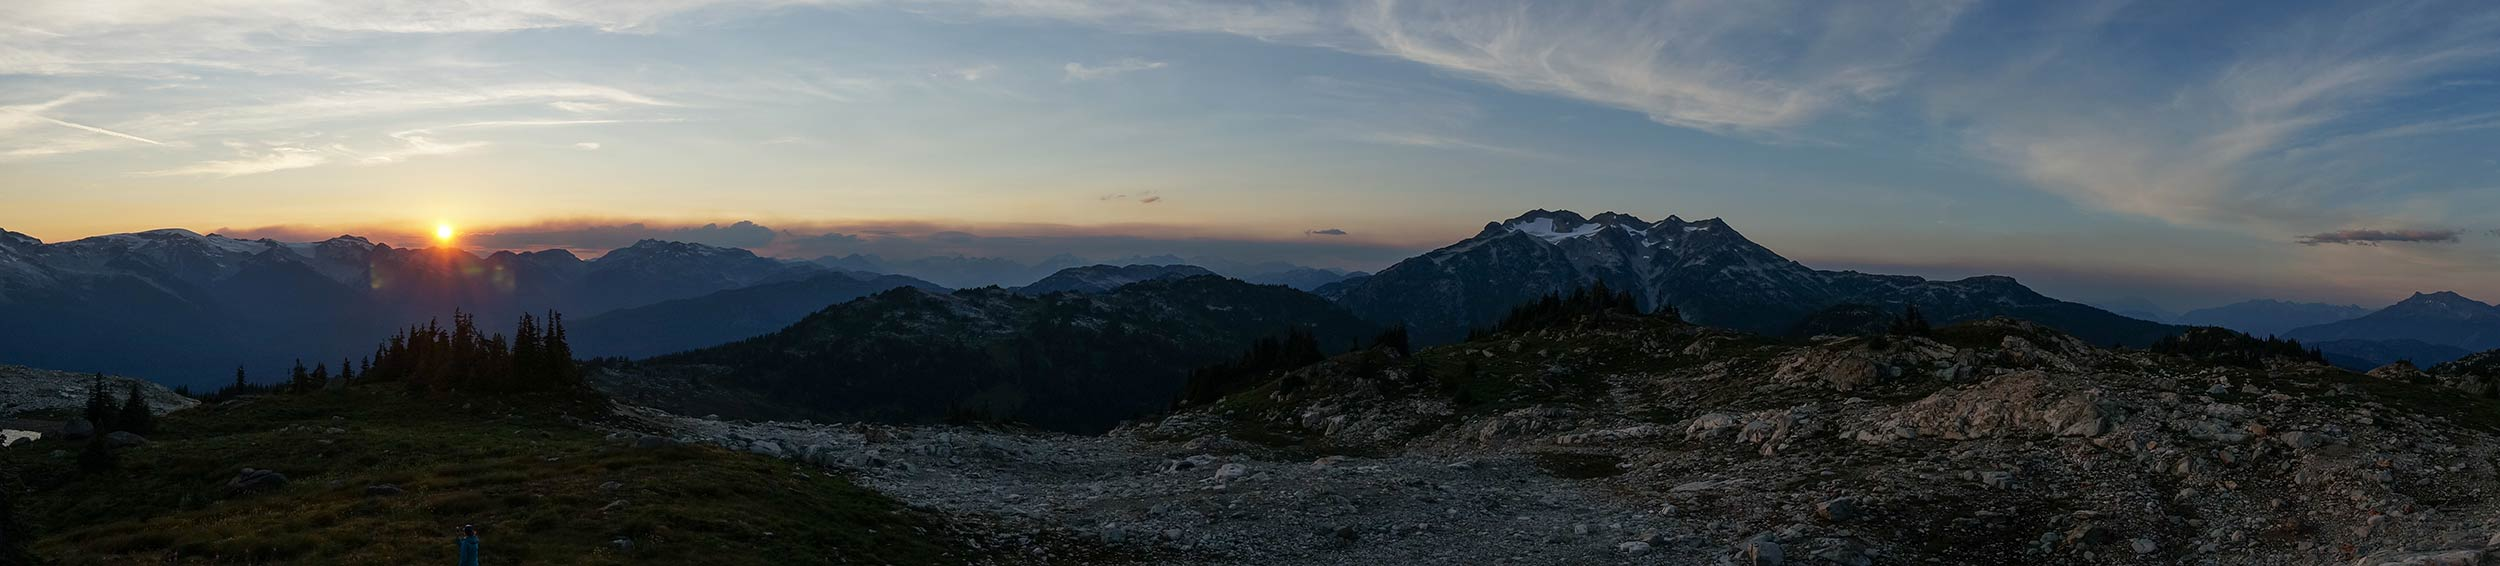 sproatt_alpine_trail_sunset_pano9.jpg